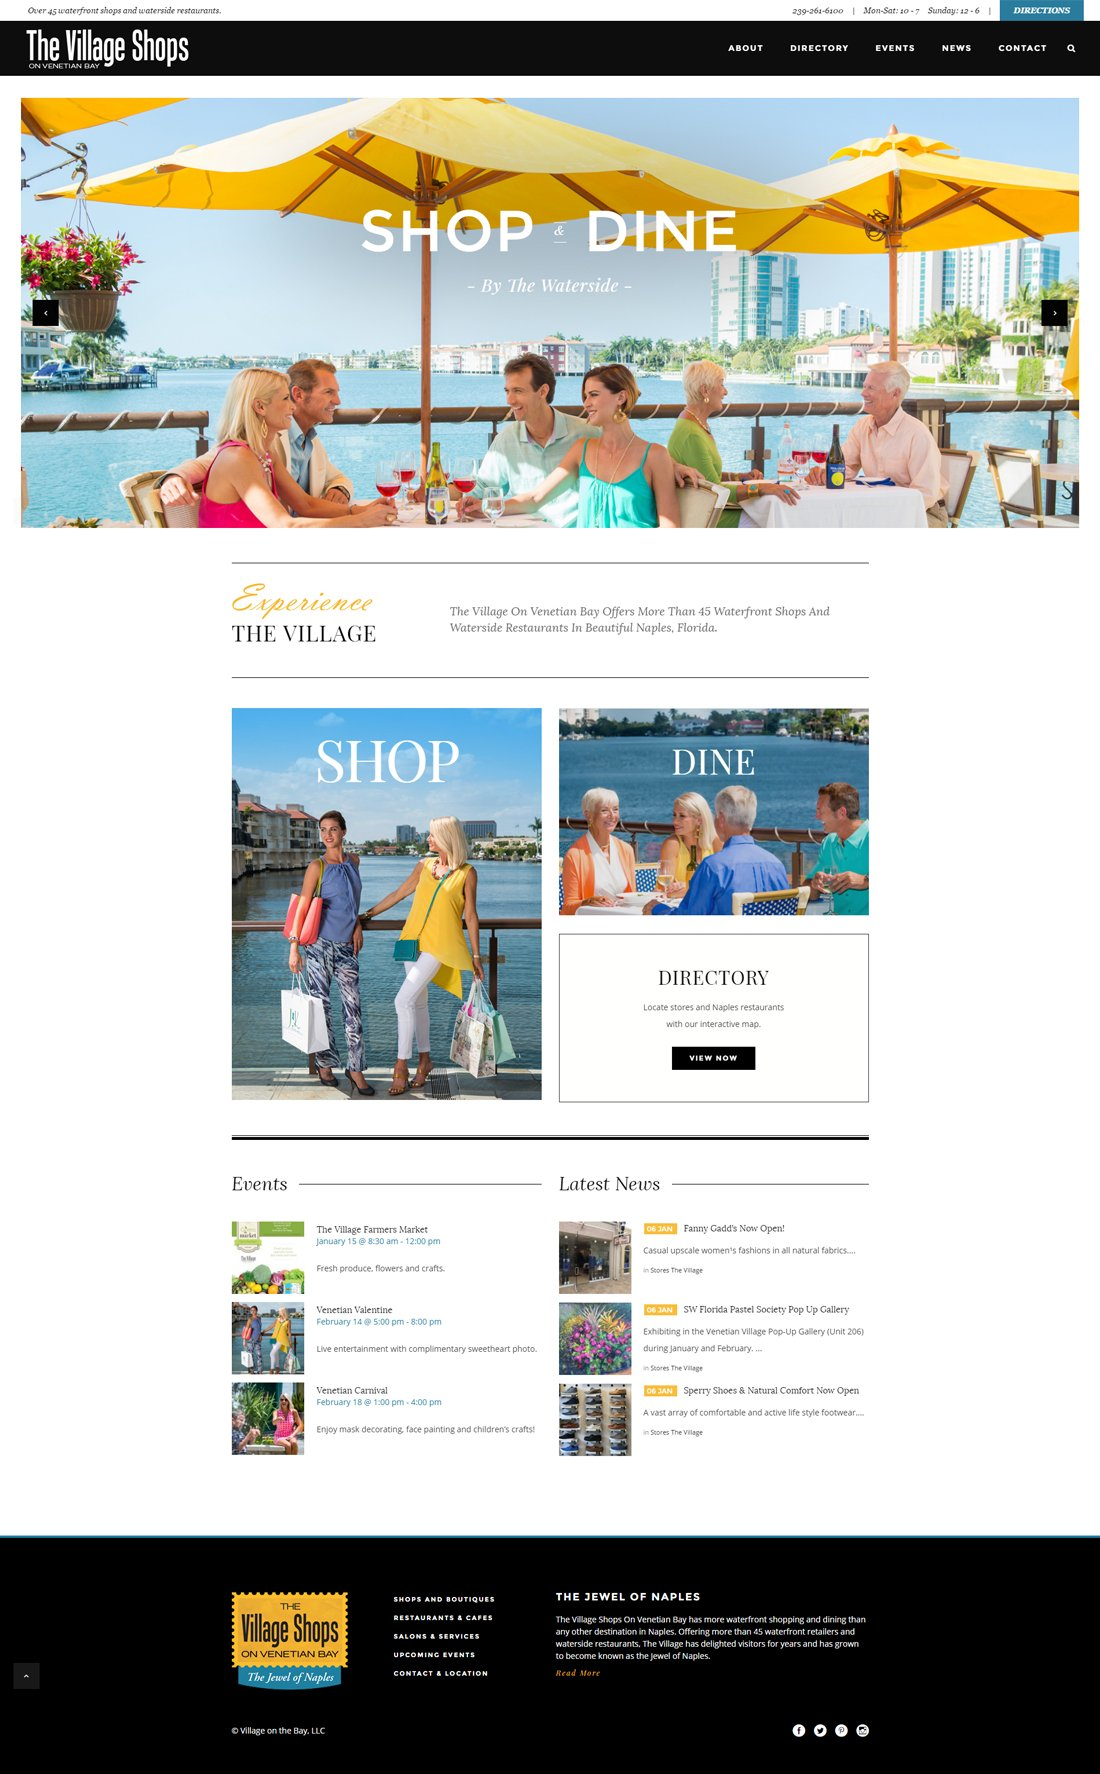 Web Design Naples Florida - Oli Denson - Shopping Center Web Design